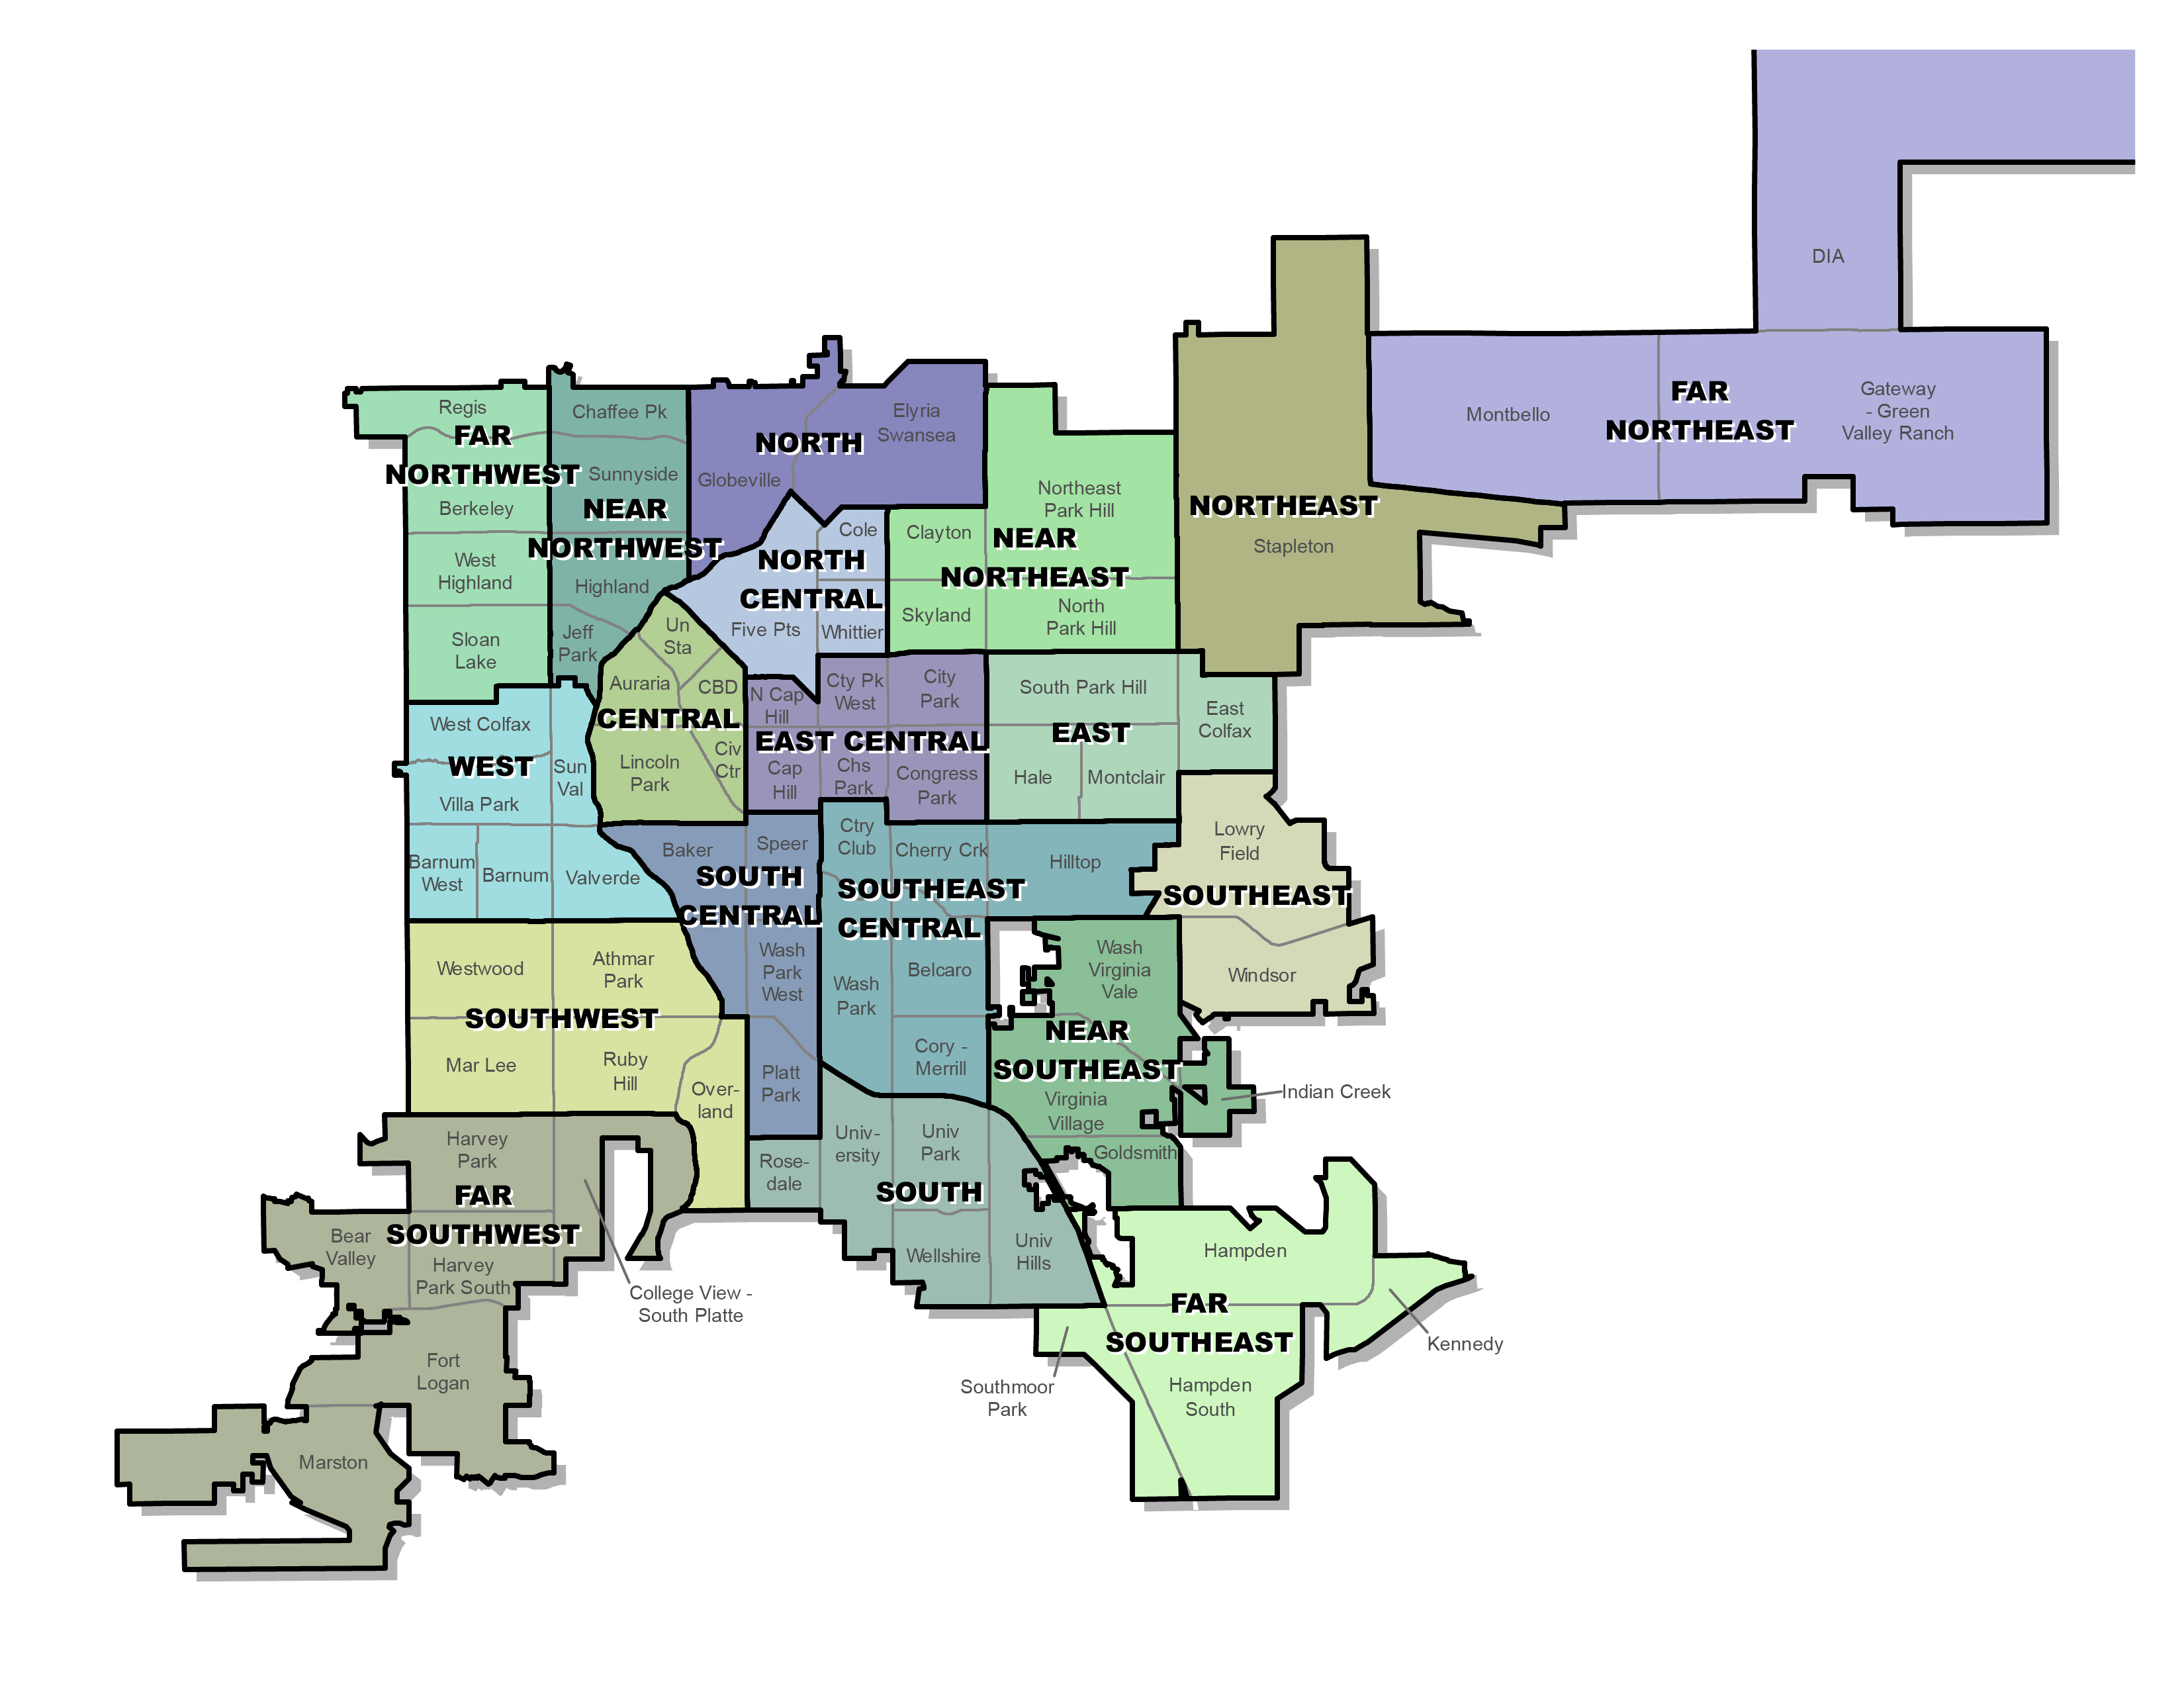 Image link to map of Neighborhood Planning Initiative proposed planning areas